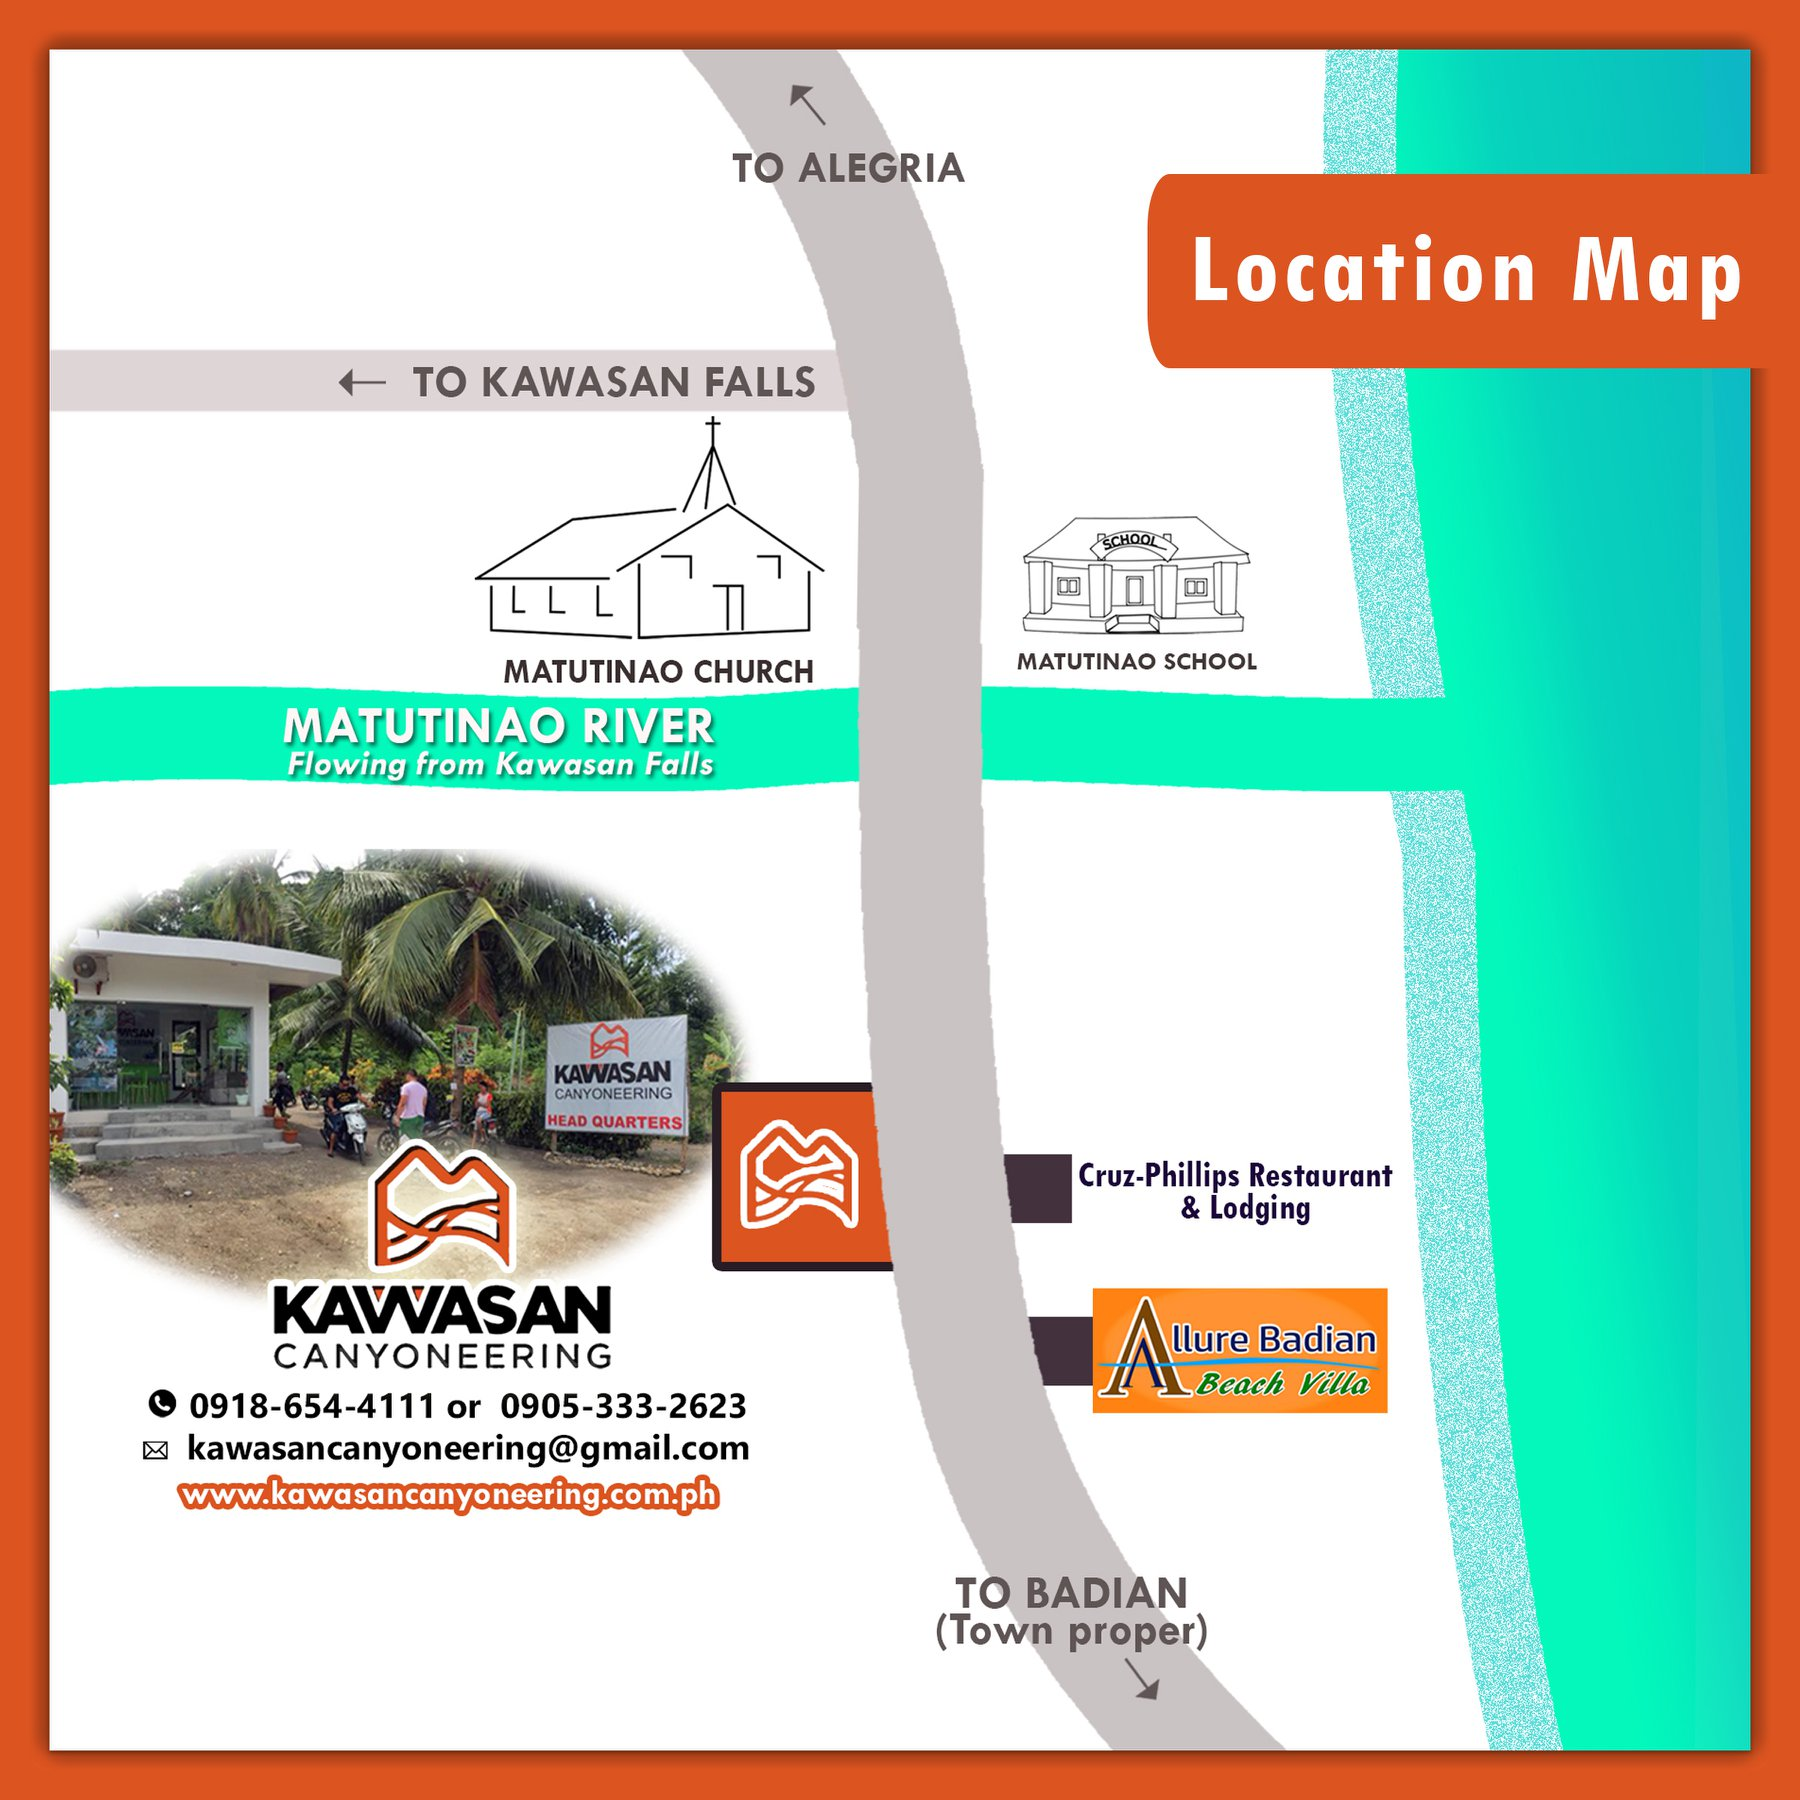 Photo of directions going to Kawasan Canyoneering